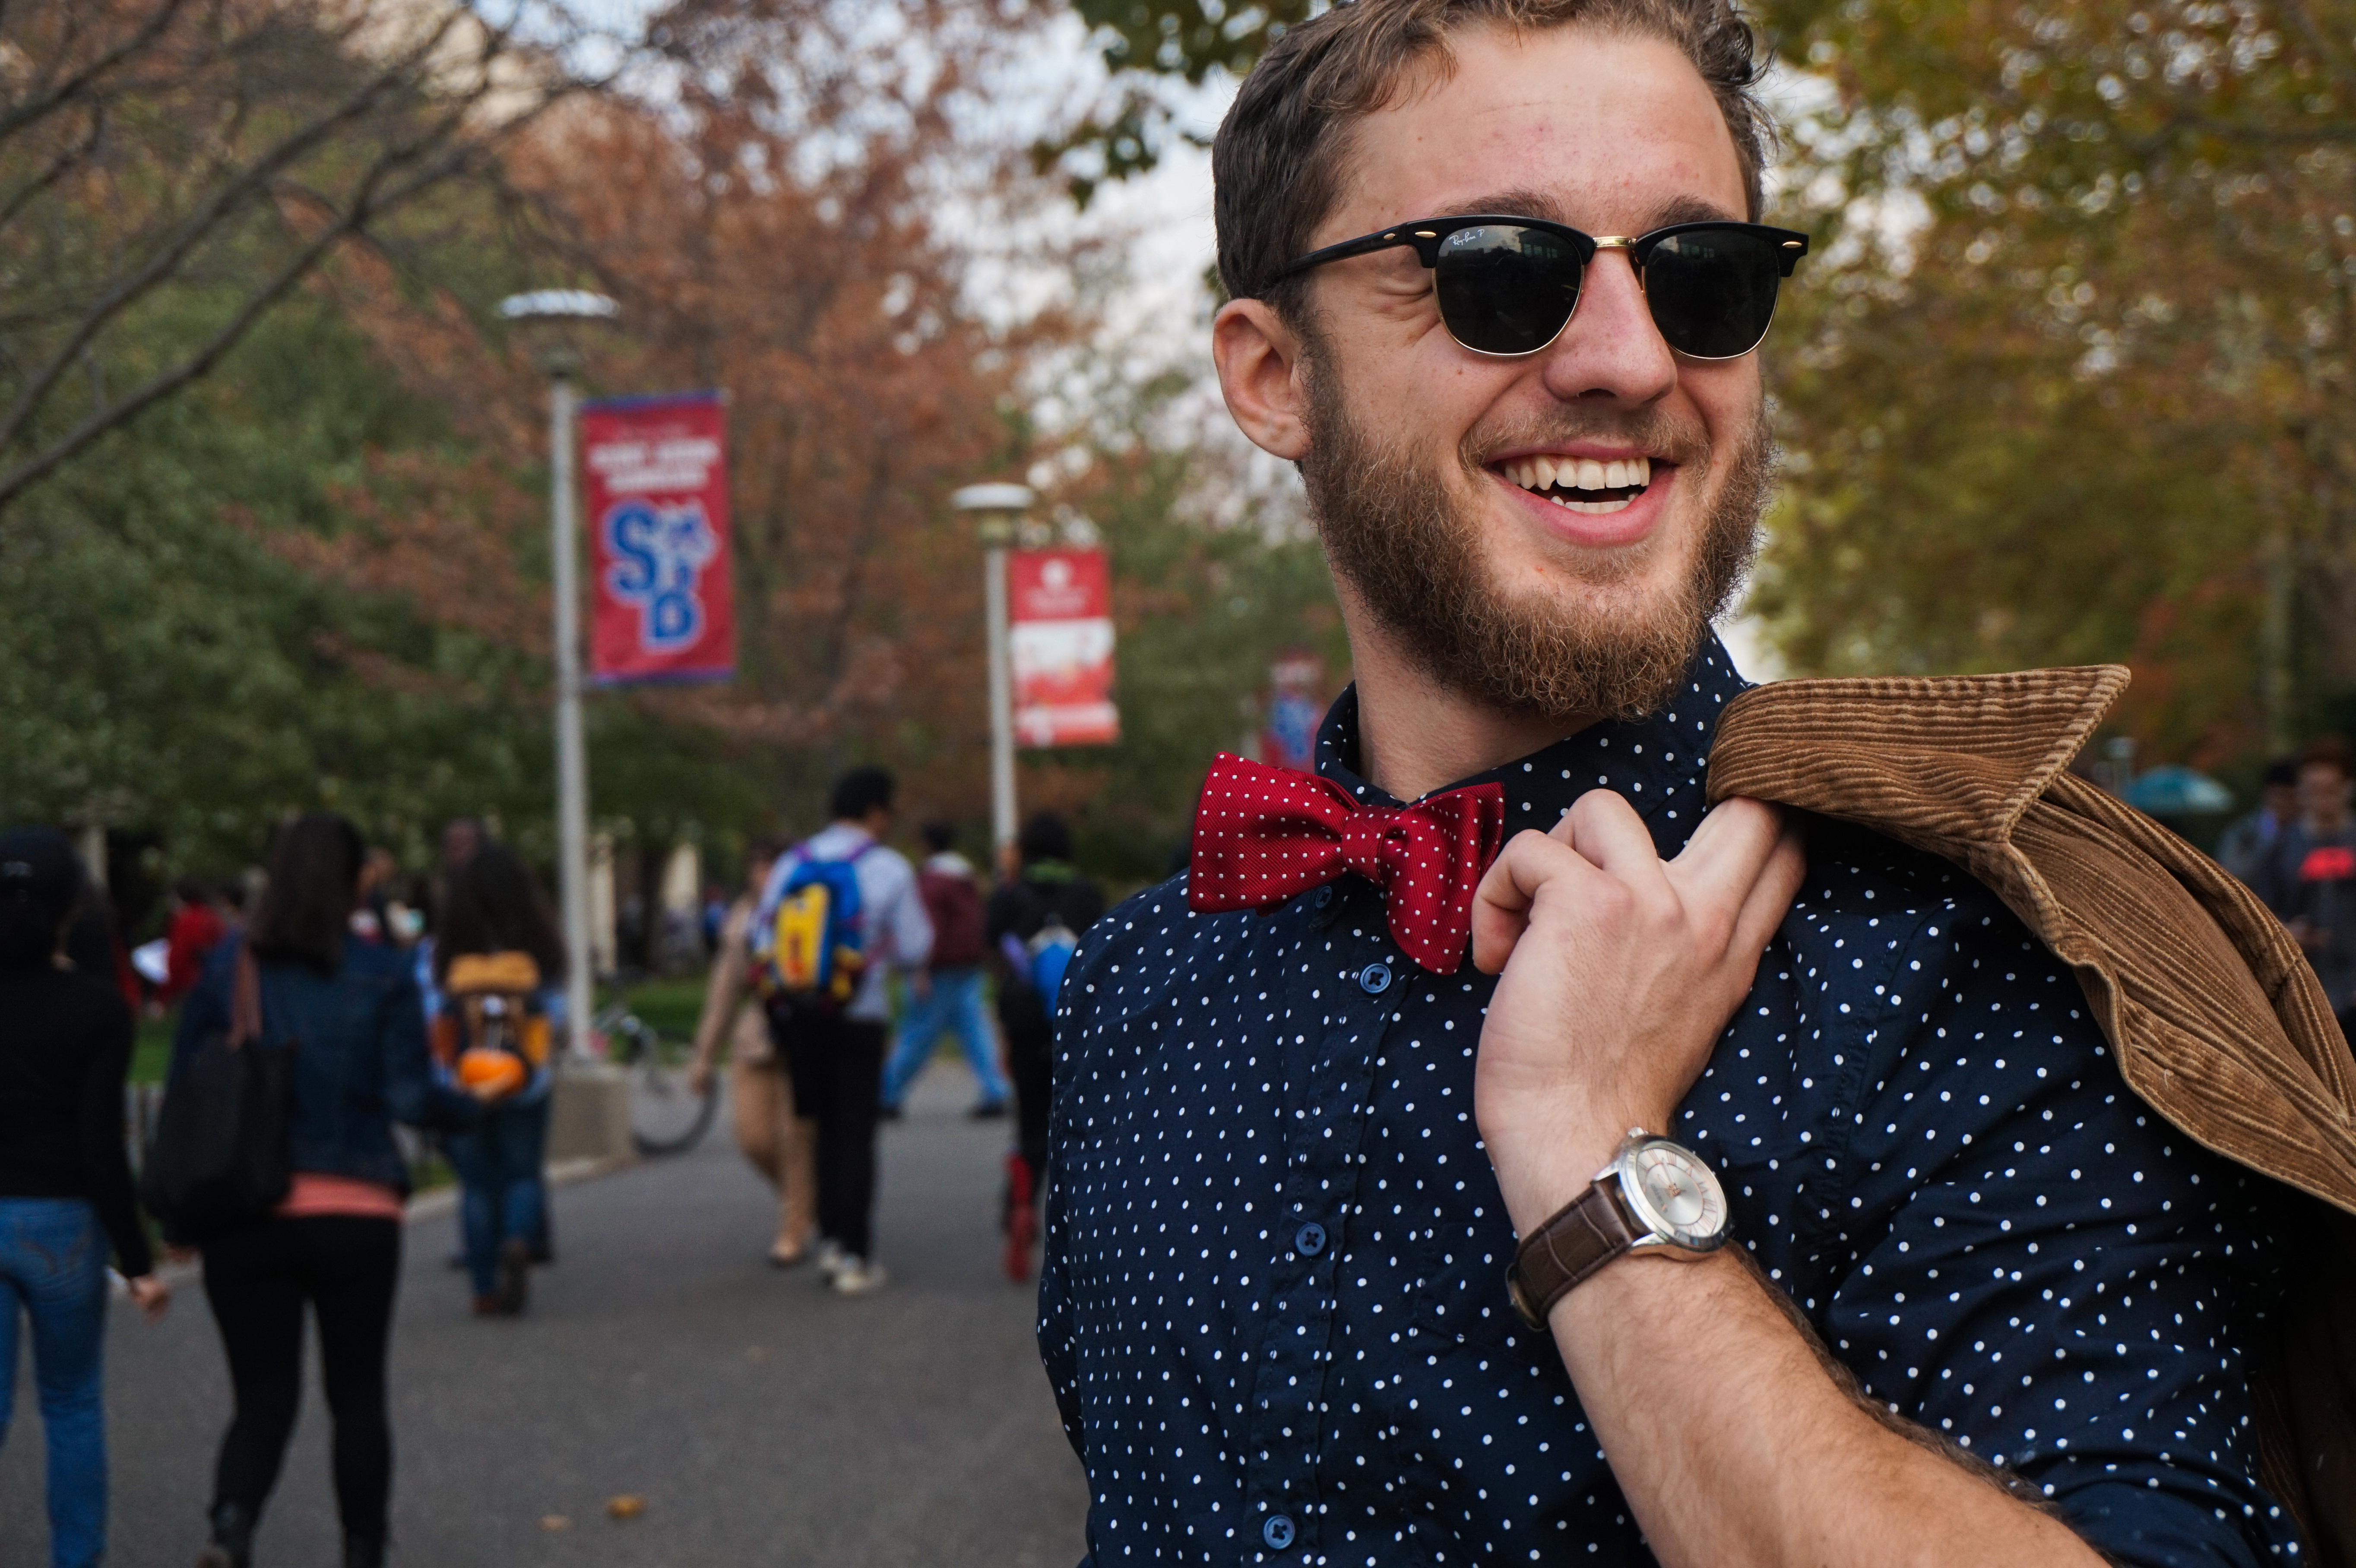 Greg Zedlovich, junior math major, poses for a photo during campus lifetime on Wednesday, Oct. 29, 2014. (HEATHER KHALIFA / THE STATESMAN)